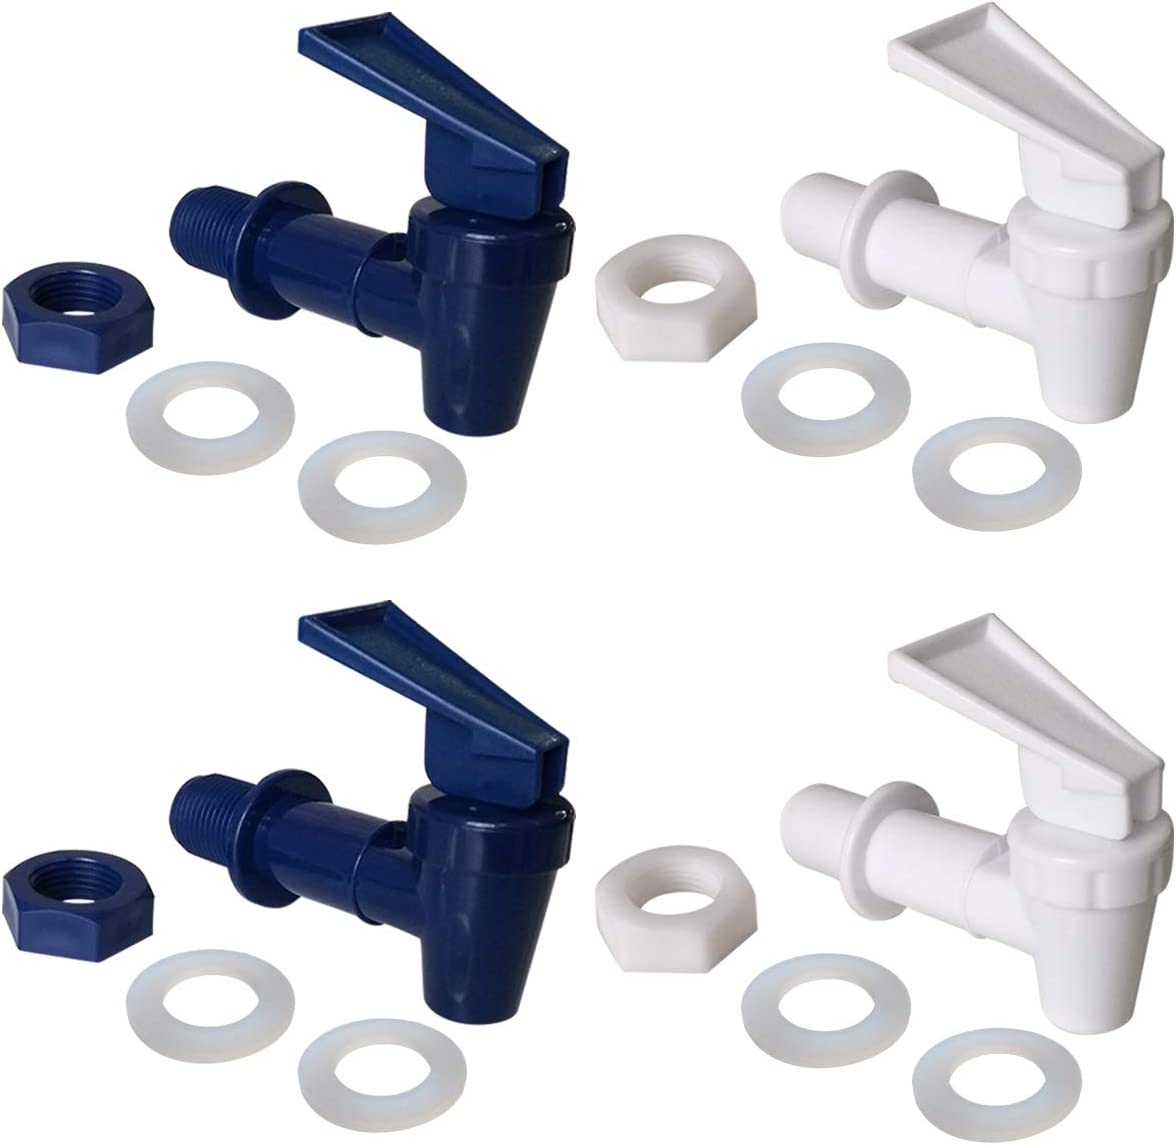 Replacement Cooler Faucet 2 White and 2 Blue Water Dispenser Tap Set. BPA Free Plastic Spigot.